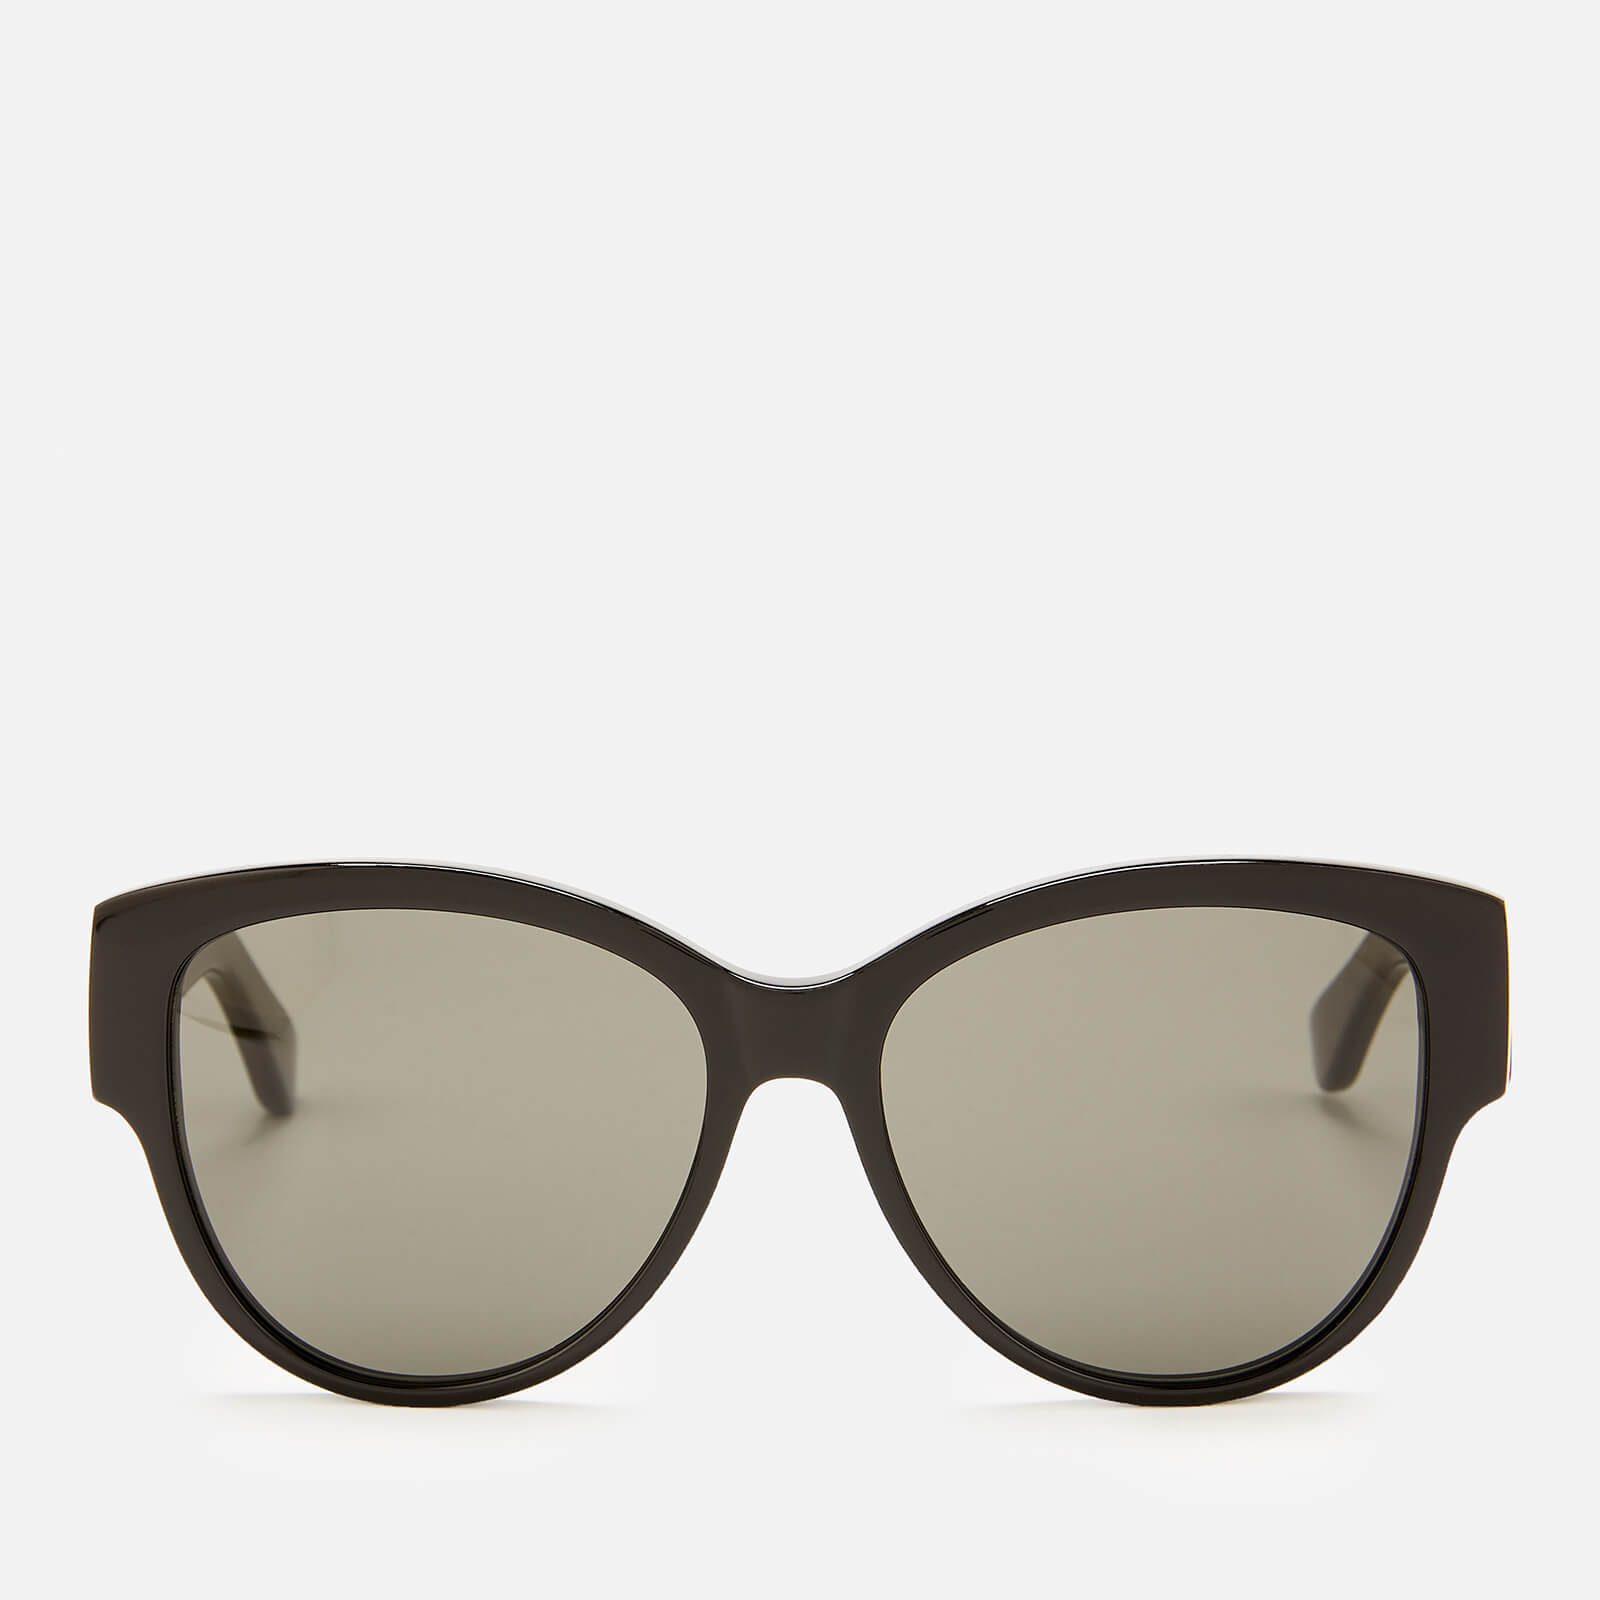 9d6754afb035 Saint Laurent Women's Oversized Round Frame Sunglasses - Black - Free UK  Delivery over £50